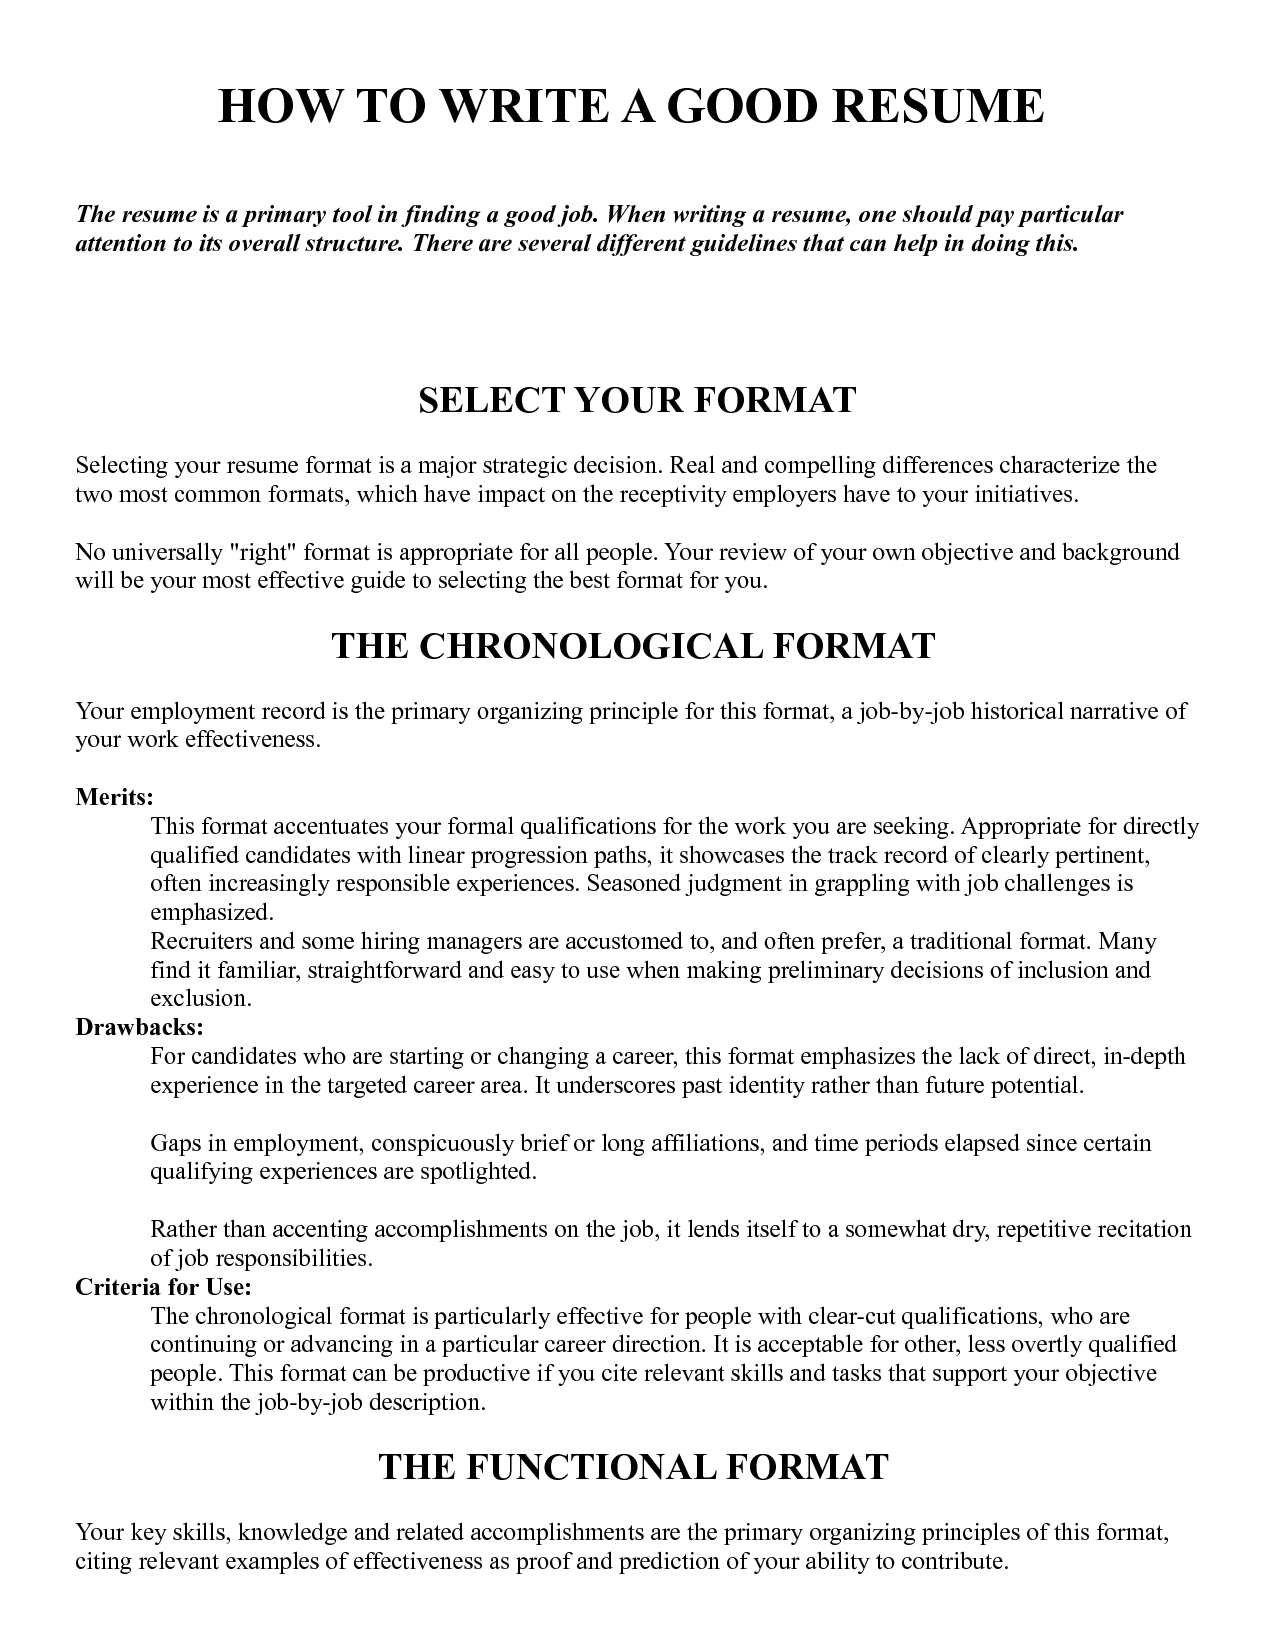 How to write a good resume (pays attention to its overall